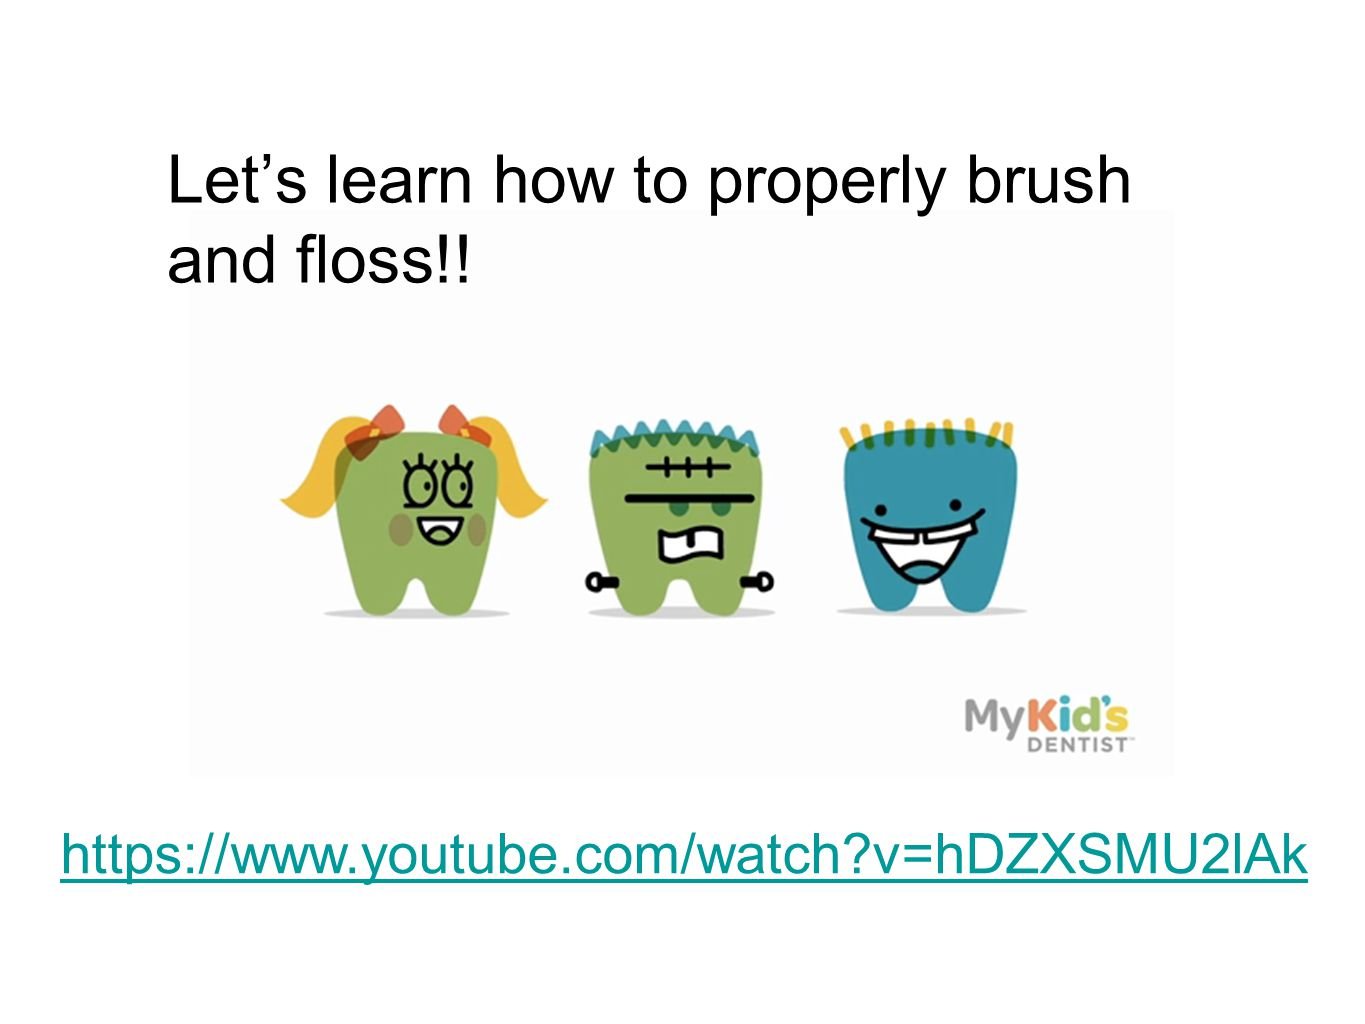 Let's learn how to properly brush and floss!!